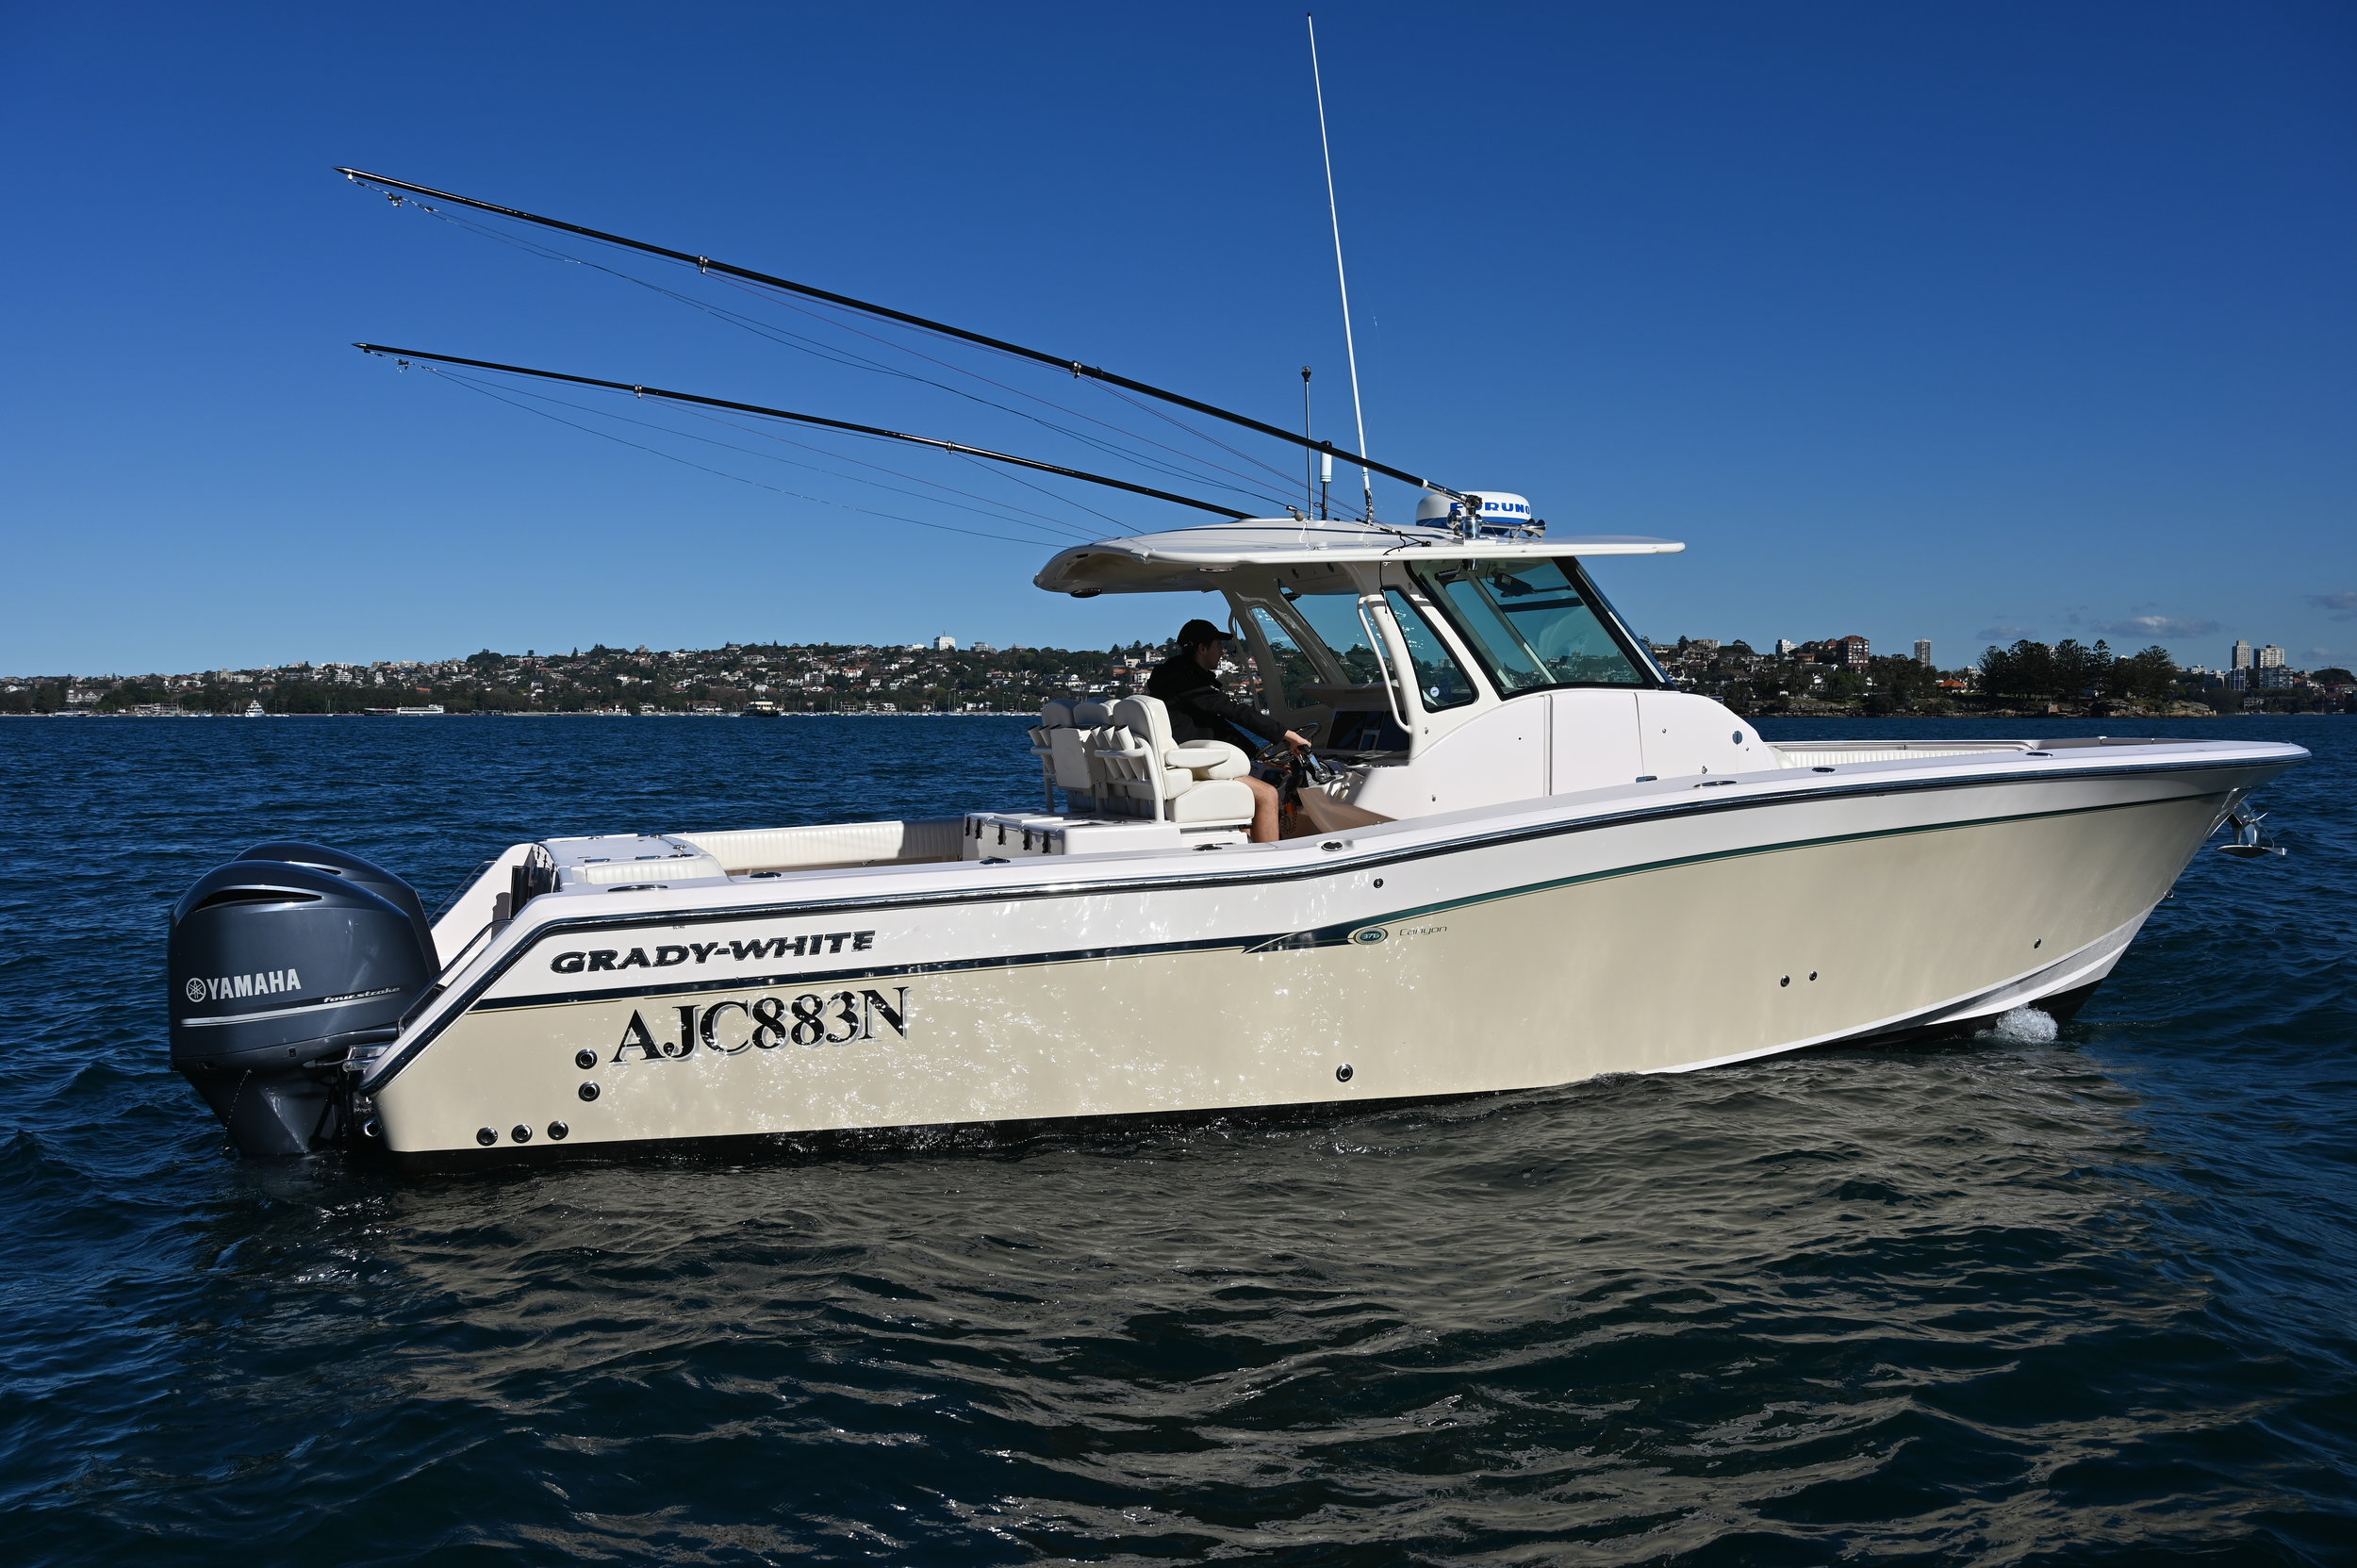 The Grady-White 376 Canyon takes centre console comfort and luxury to the next level. With her broad 4.01m beam, the 376 boasts a huge interior with room for several anglers to fish without bumping elbows.